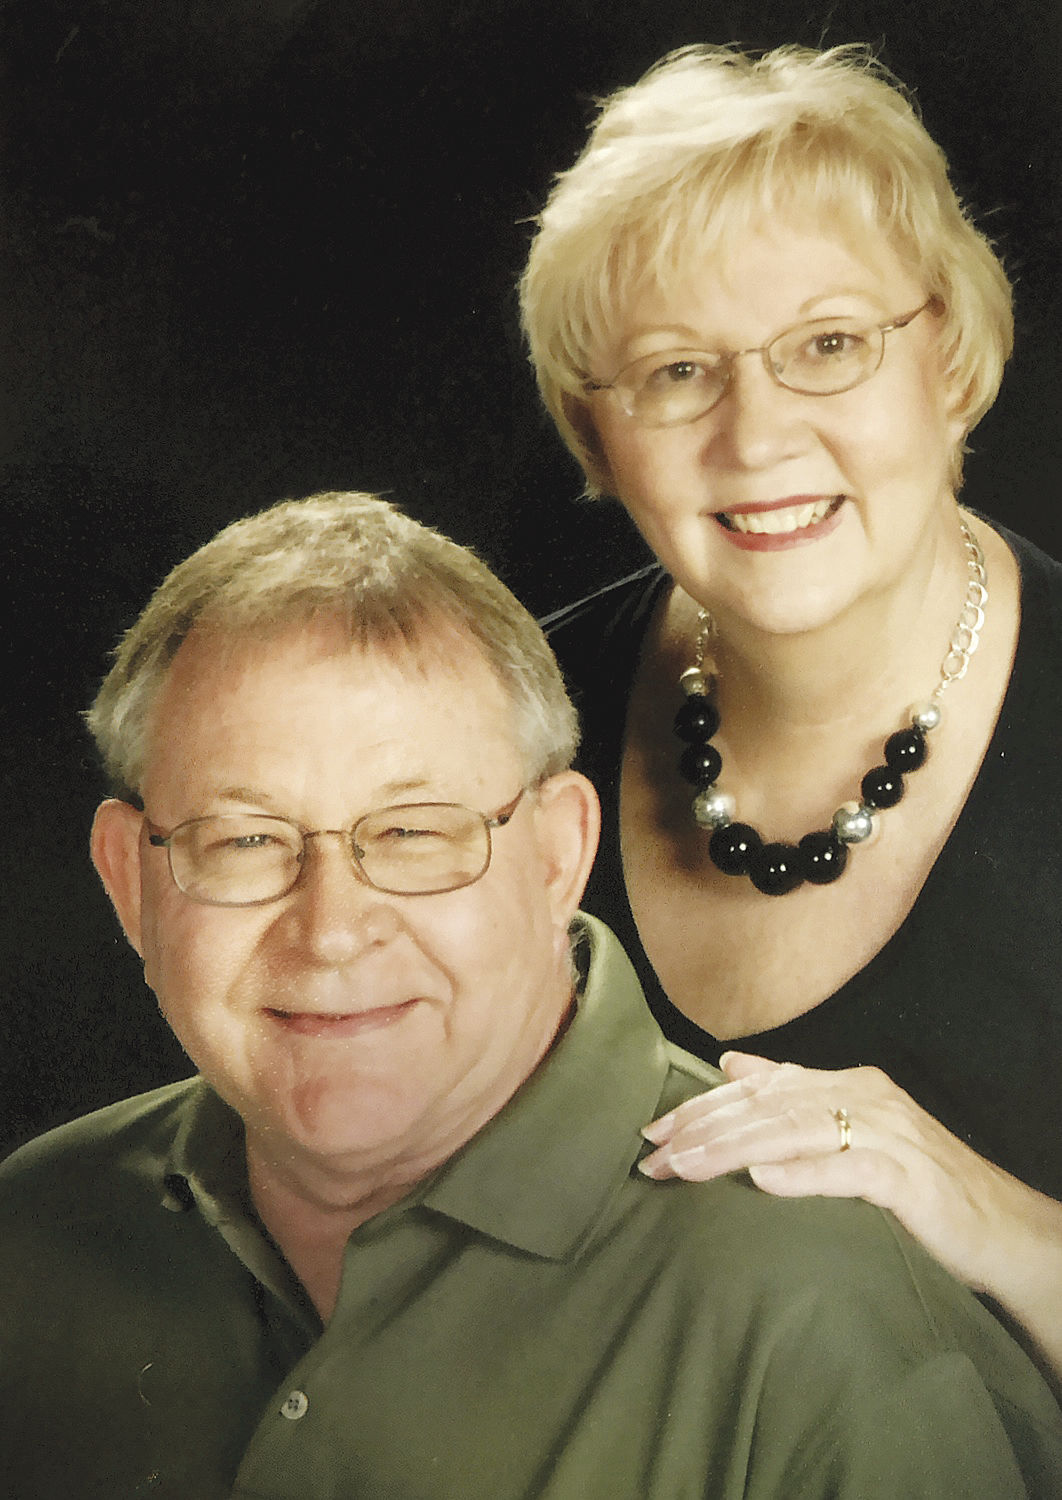 Mike and Cheryl Thevil (OLDER)